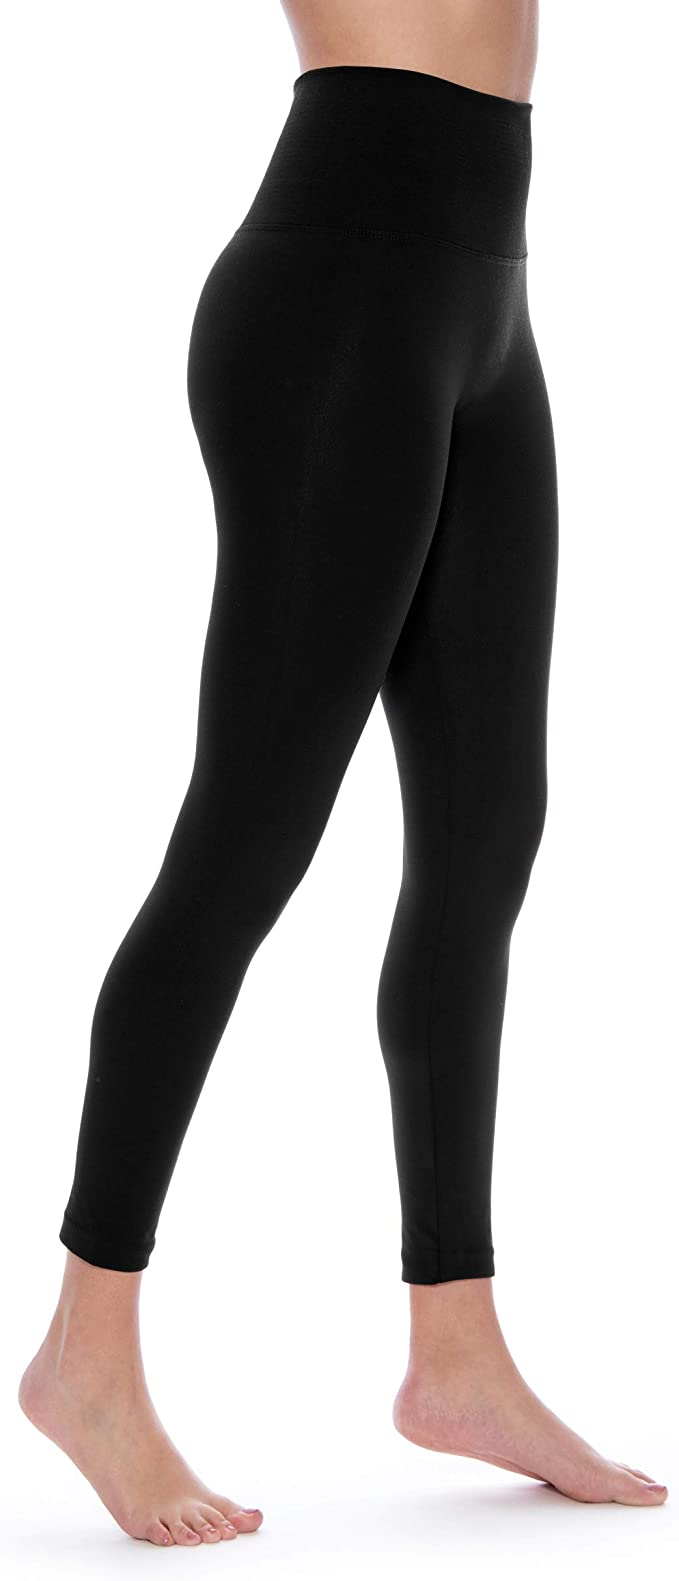 Indero High Waist Yoga Fleece Lined Warm Ultra Soft Leggings